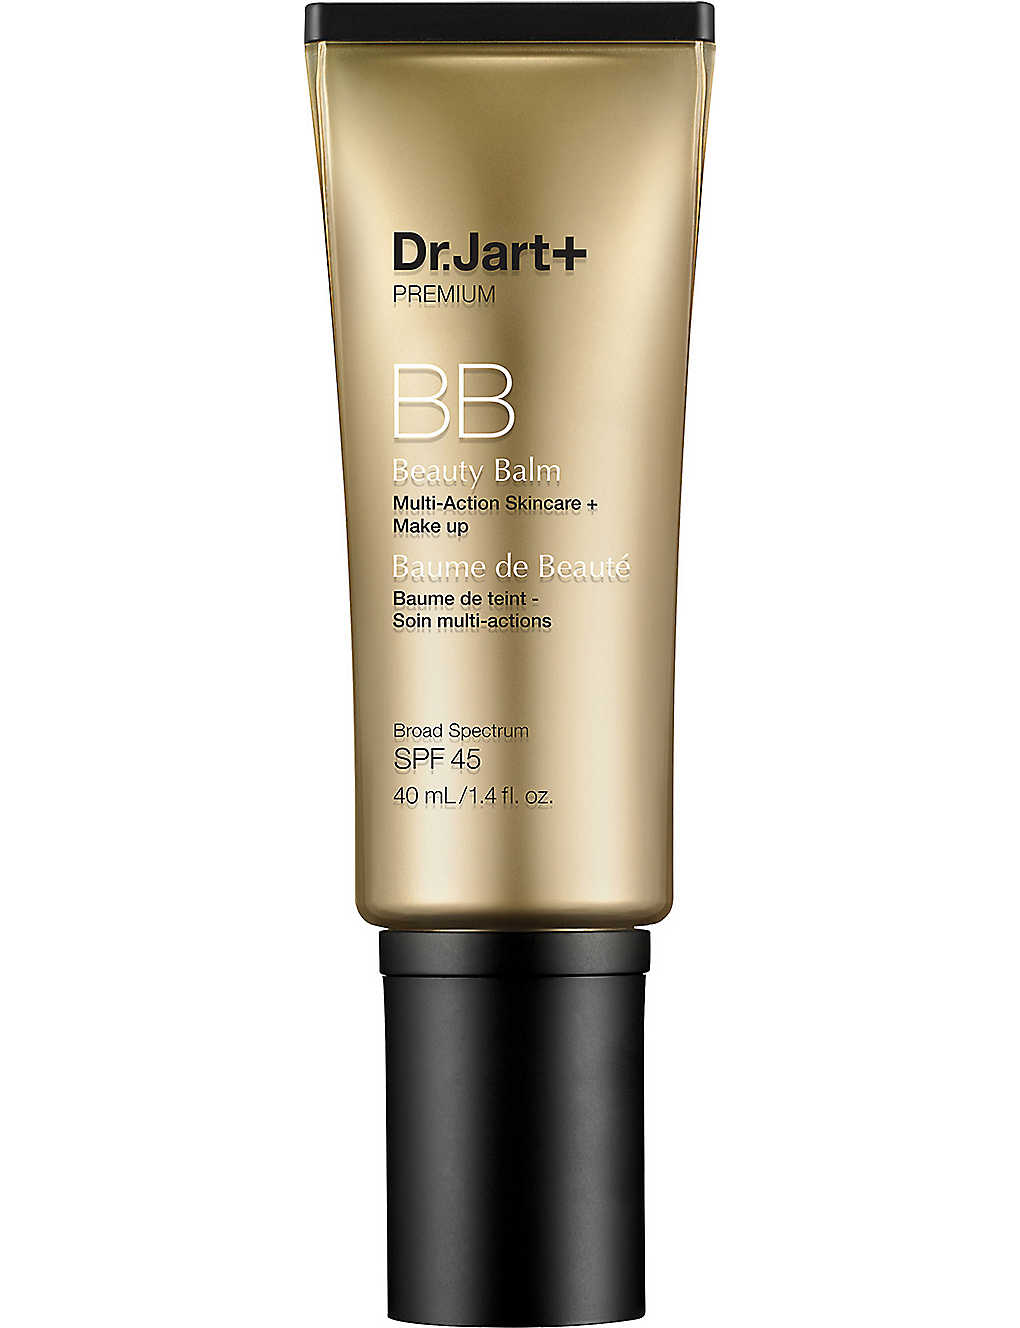 DR JART+: Premium Beauty Balm 40ml